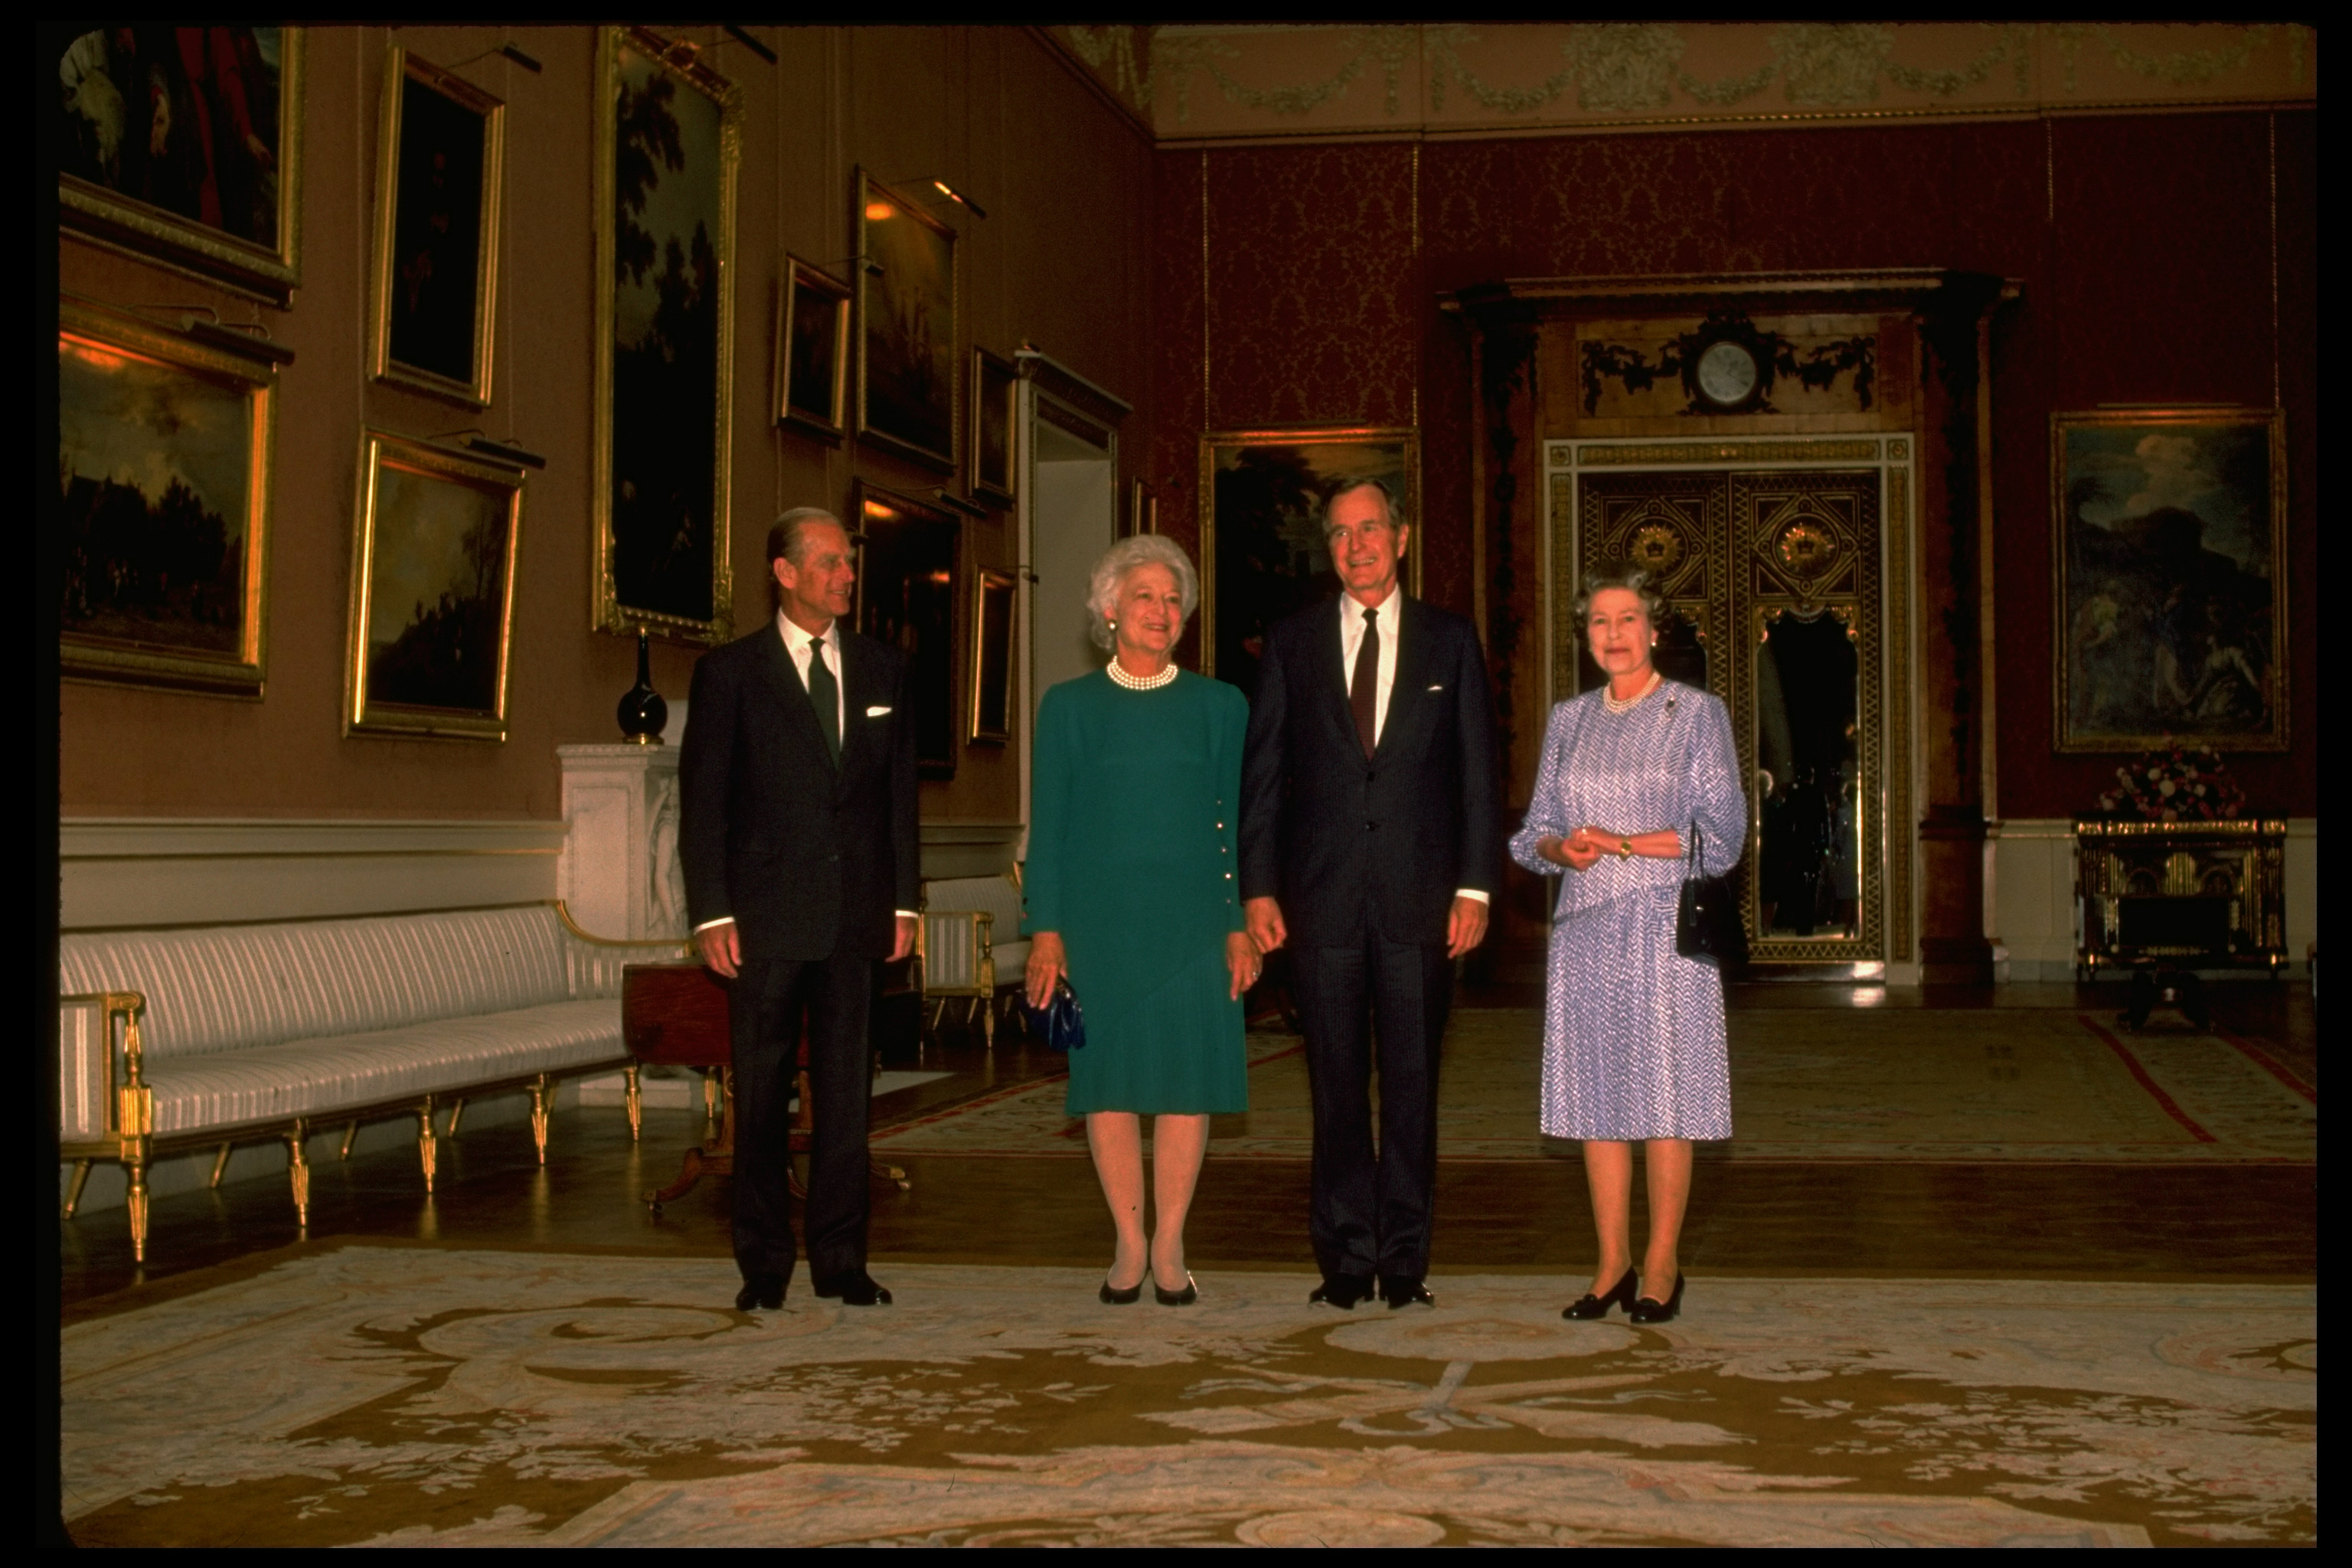 President George H. W. Bush and signature-pearls-sporting Barbara Bush with. Queen Elizabeth II & Prince Philip, at Buckingham Palace, London, England on June 1, 1989